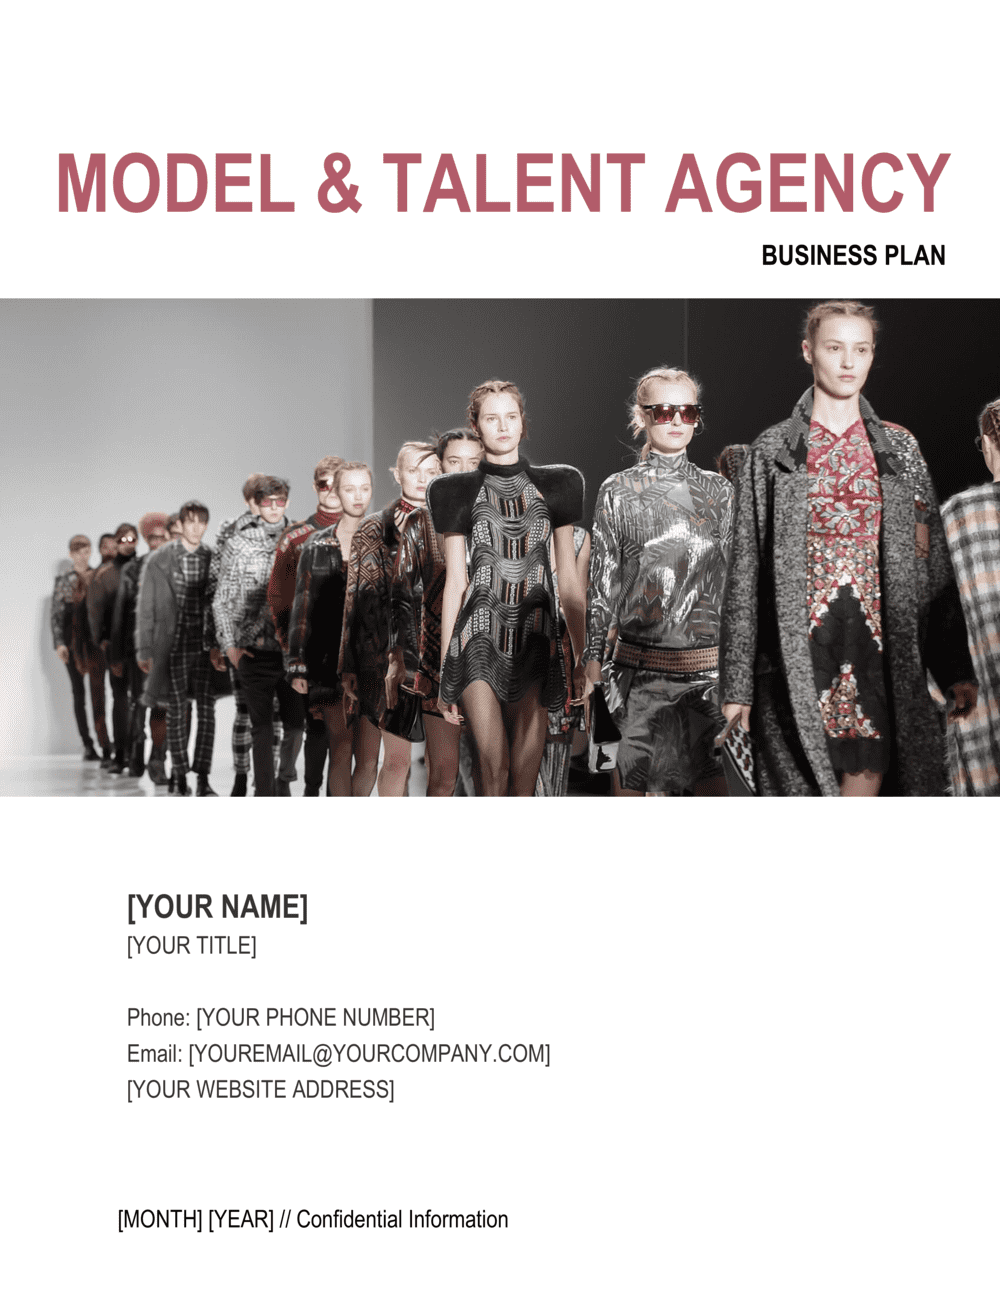 Business-in-a-Box's Model and Talent Agency Business Plan Template